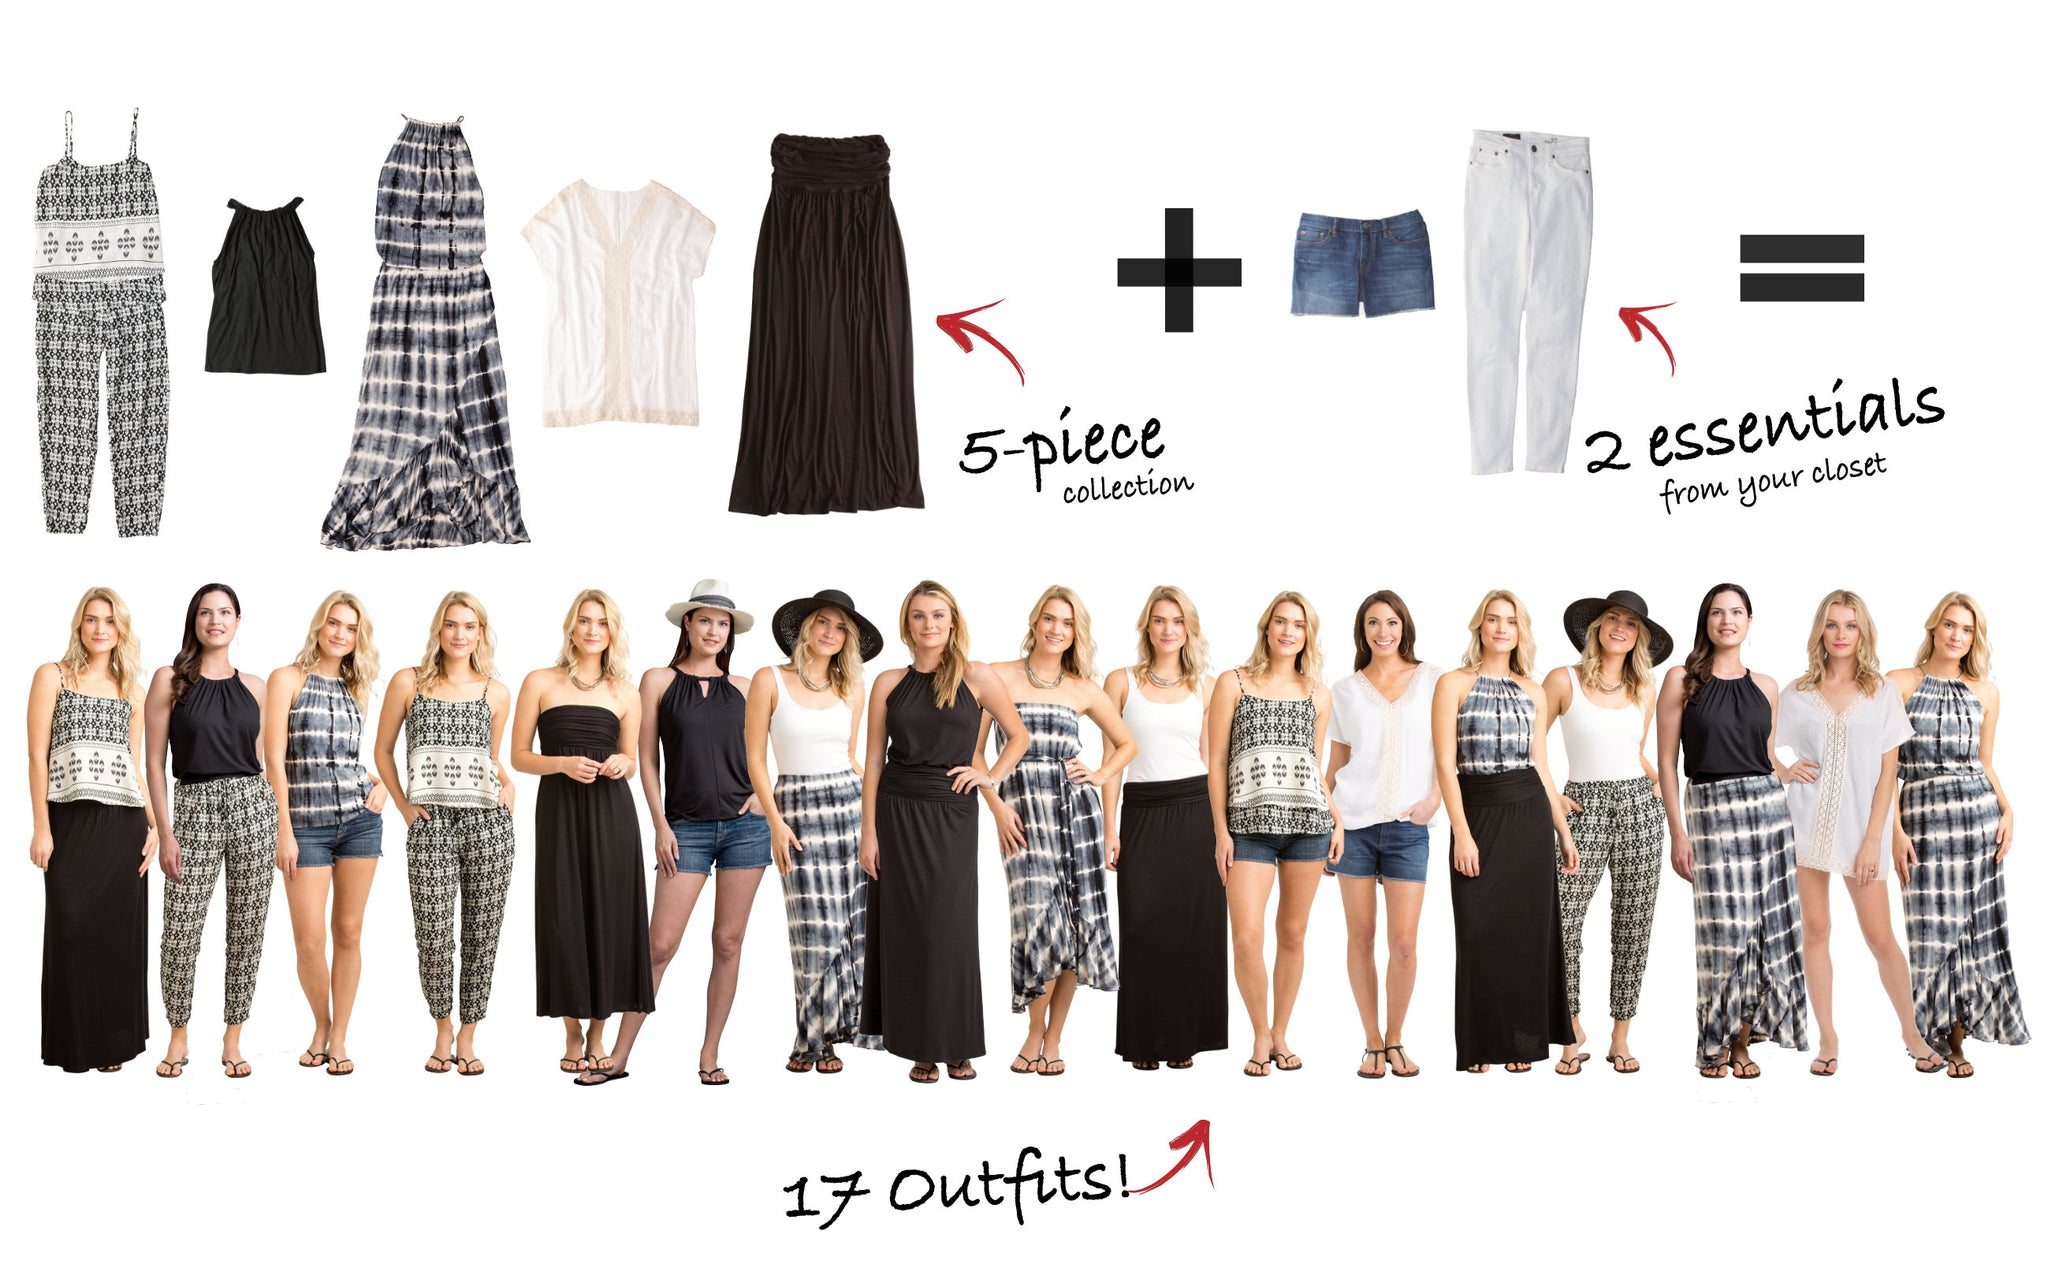 Costa Rica Collection: 5 items = 17 outfits